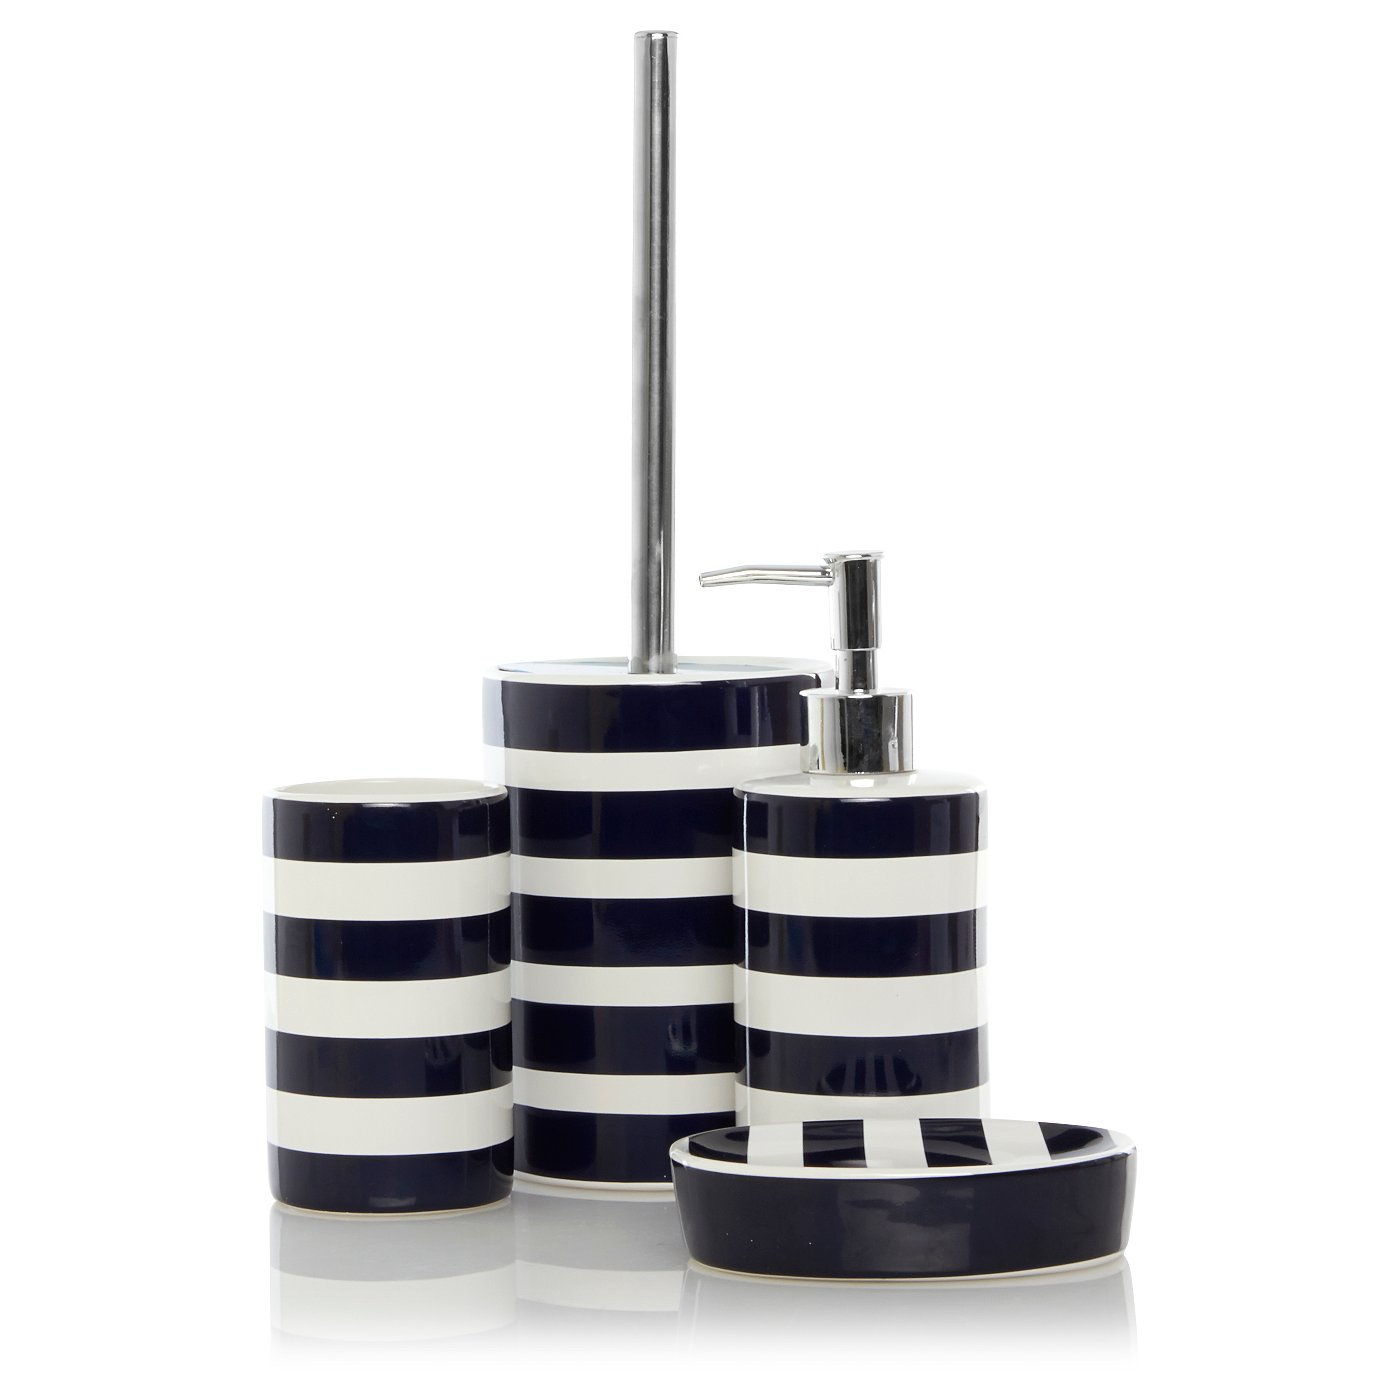 Blue and white bathroom accessories - Black And White Bathroom Accessories Homezanin Black And White Striped Bathroom Accessories Best Bathroom 2017